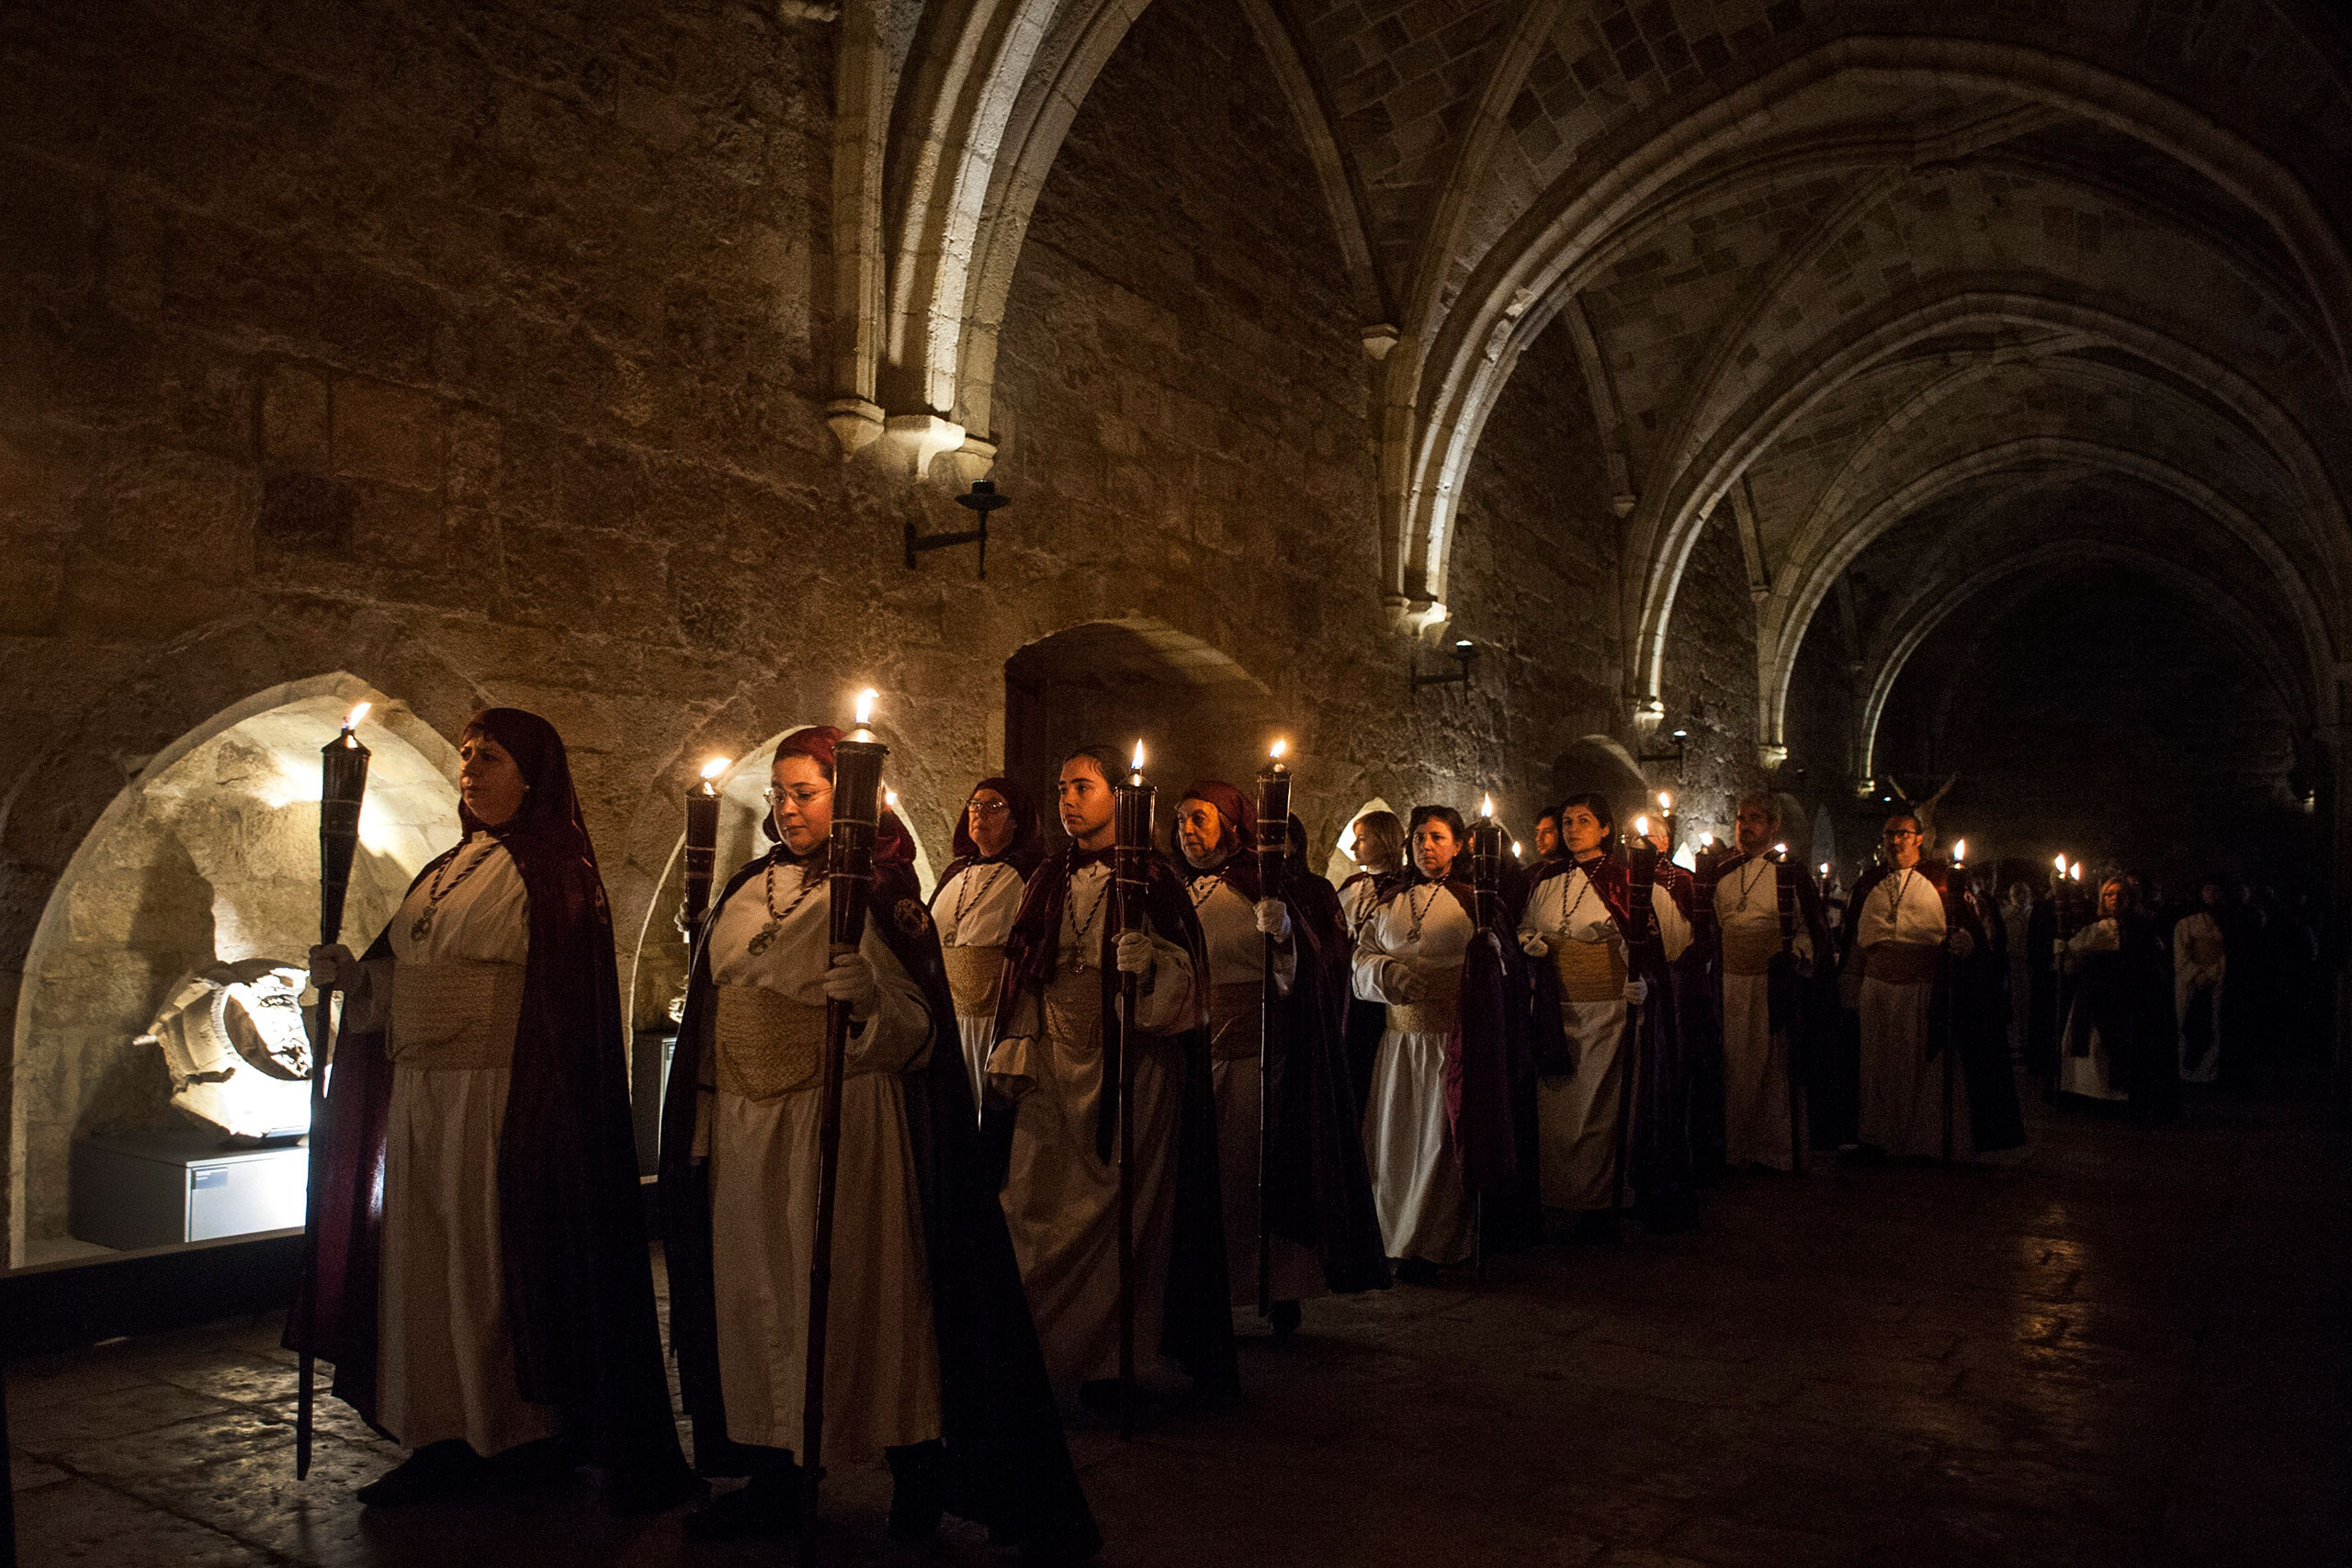 Participants in the procession of the Holy Christ of Peace celebrate on the night of Holy Thursday in Santander, Spain, March 24, 2016.